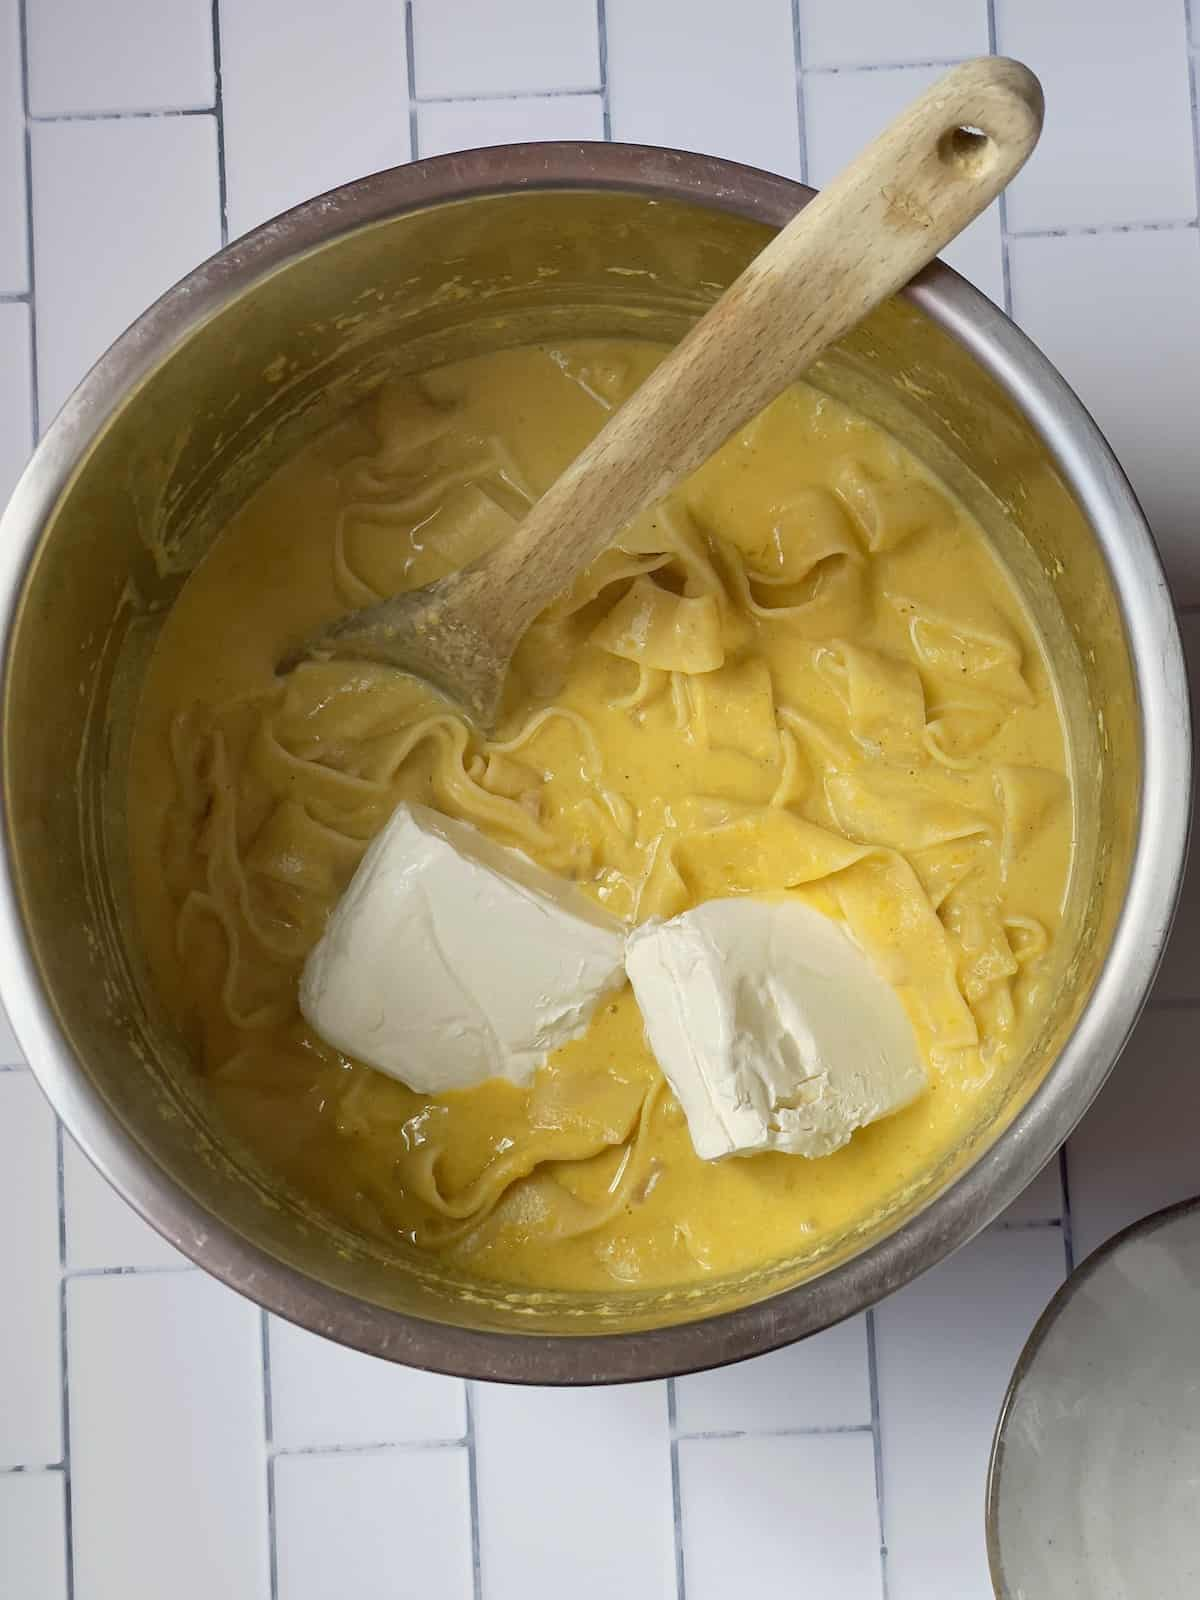 cream cheese being mixed into pumpkin pasta sauce in a pressure cooker